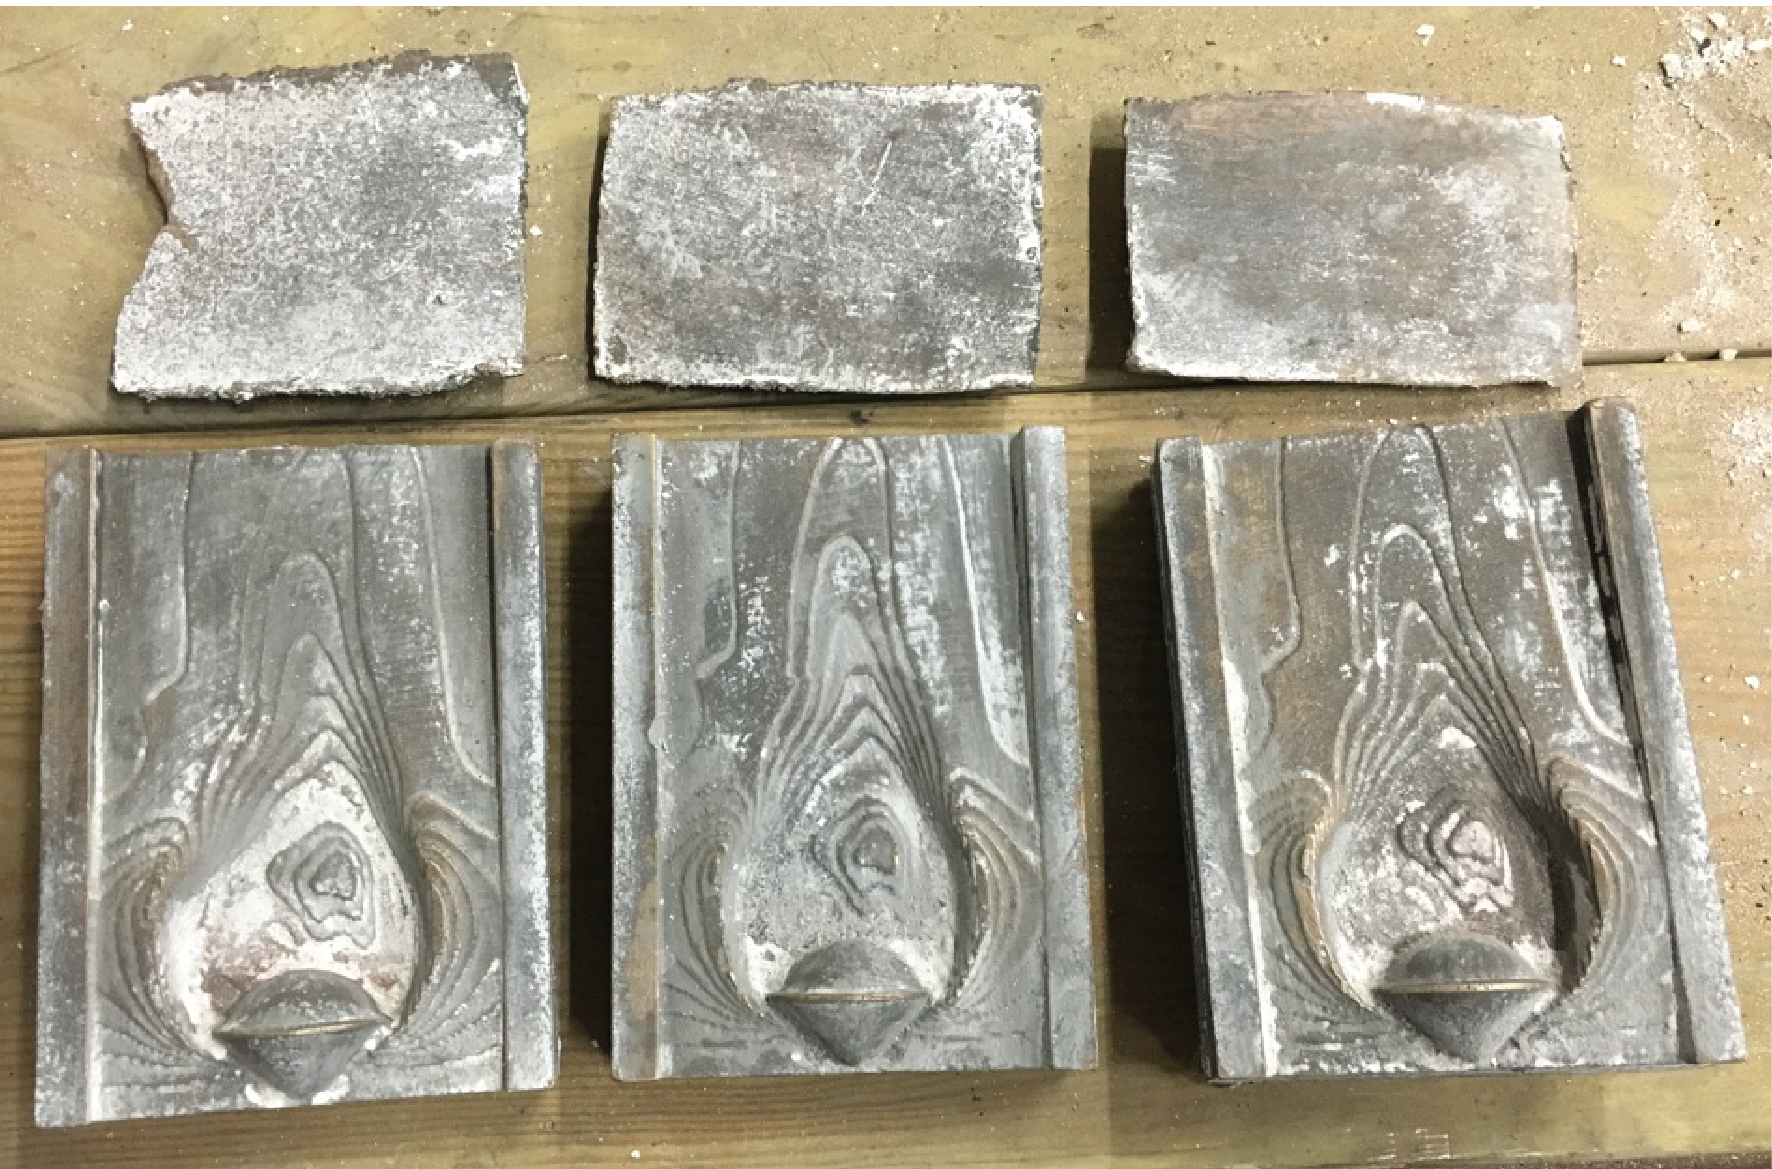 fronts after removing the ceramic shells